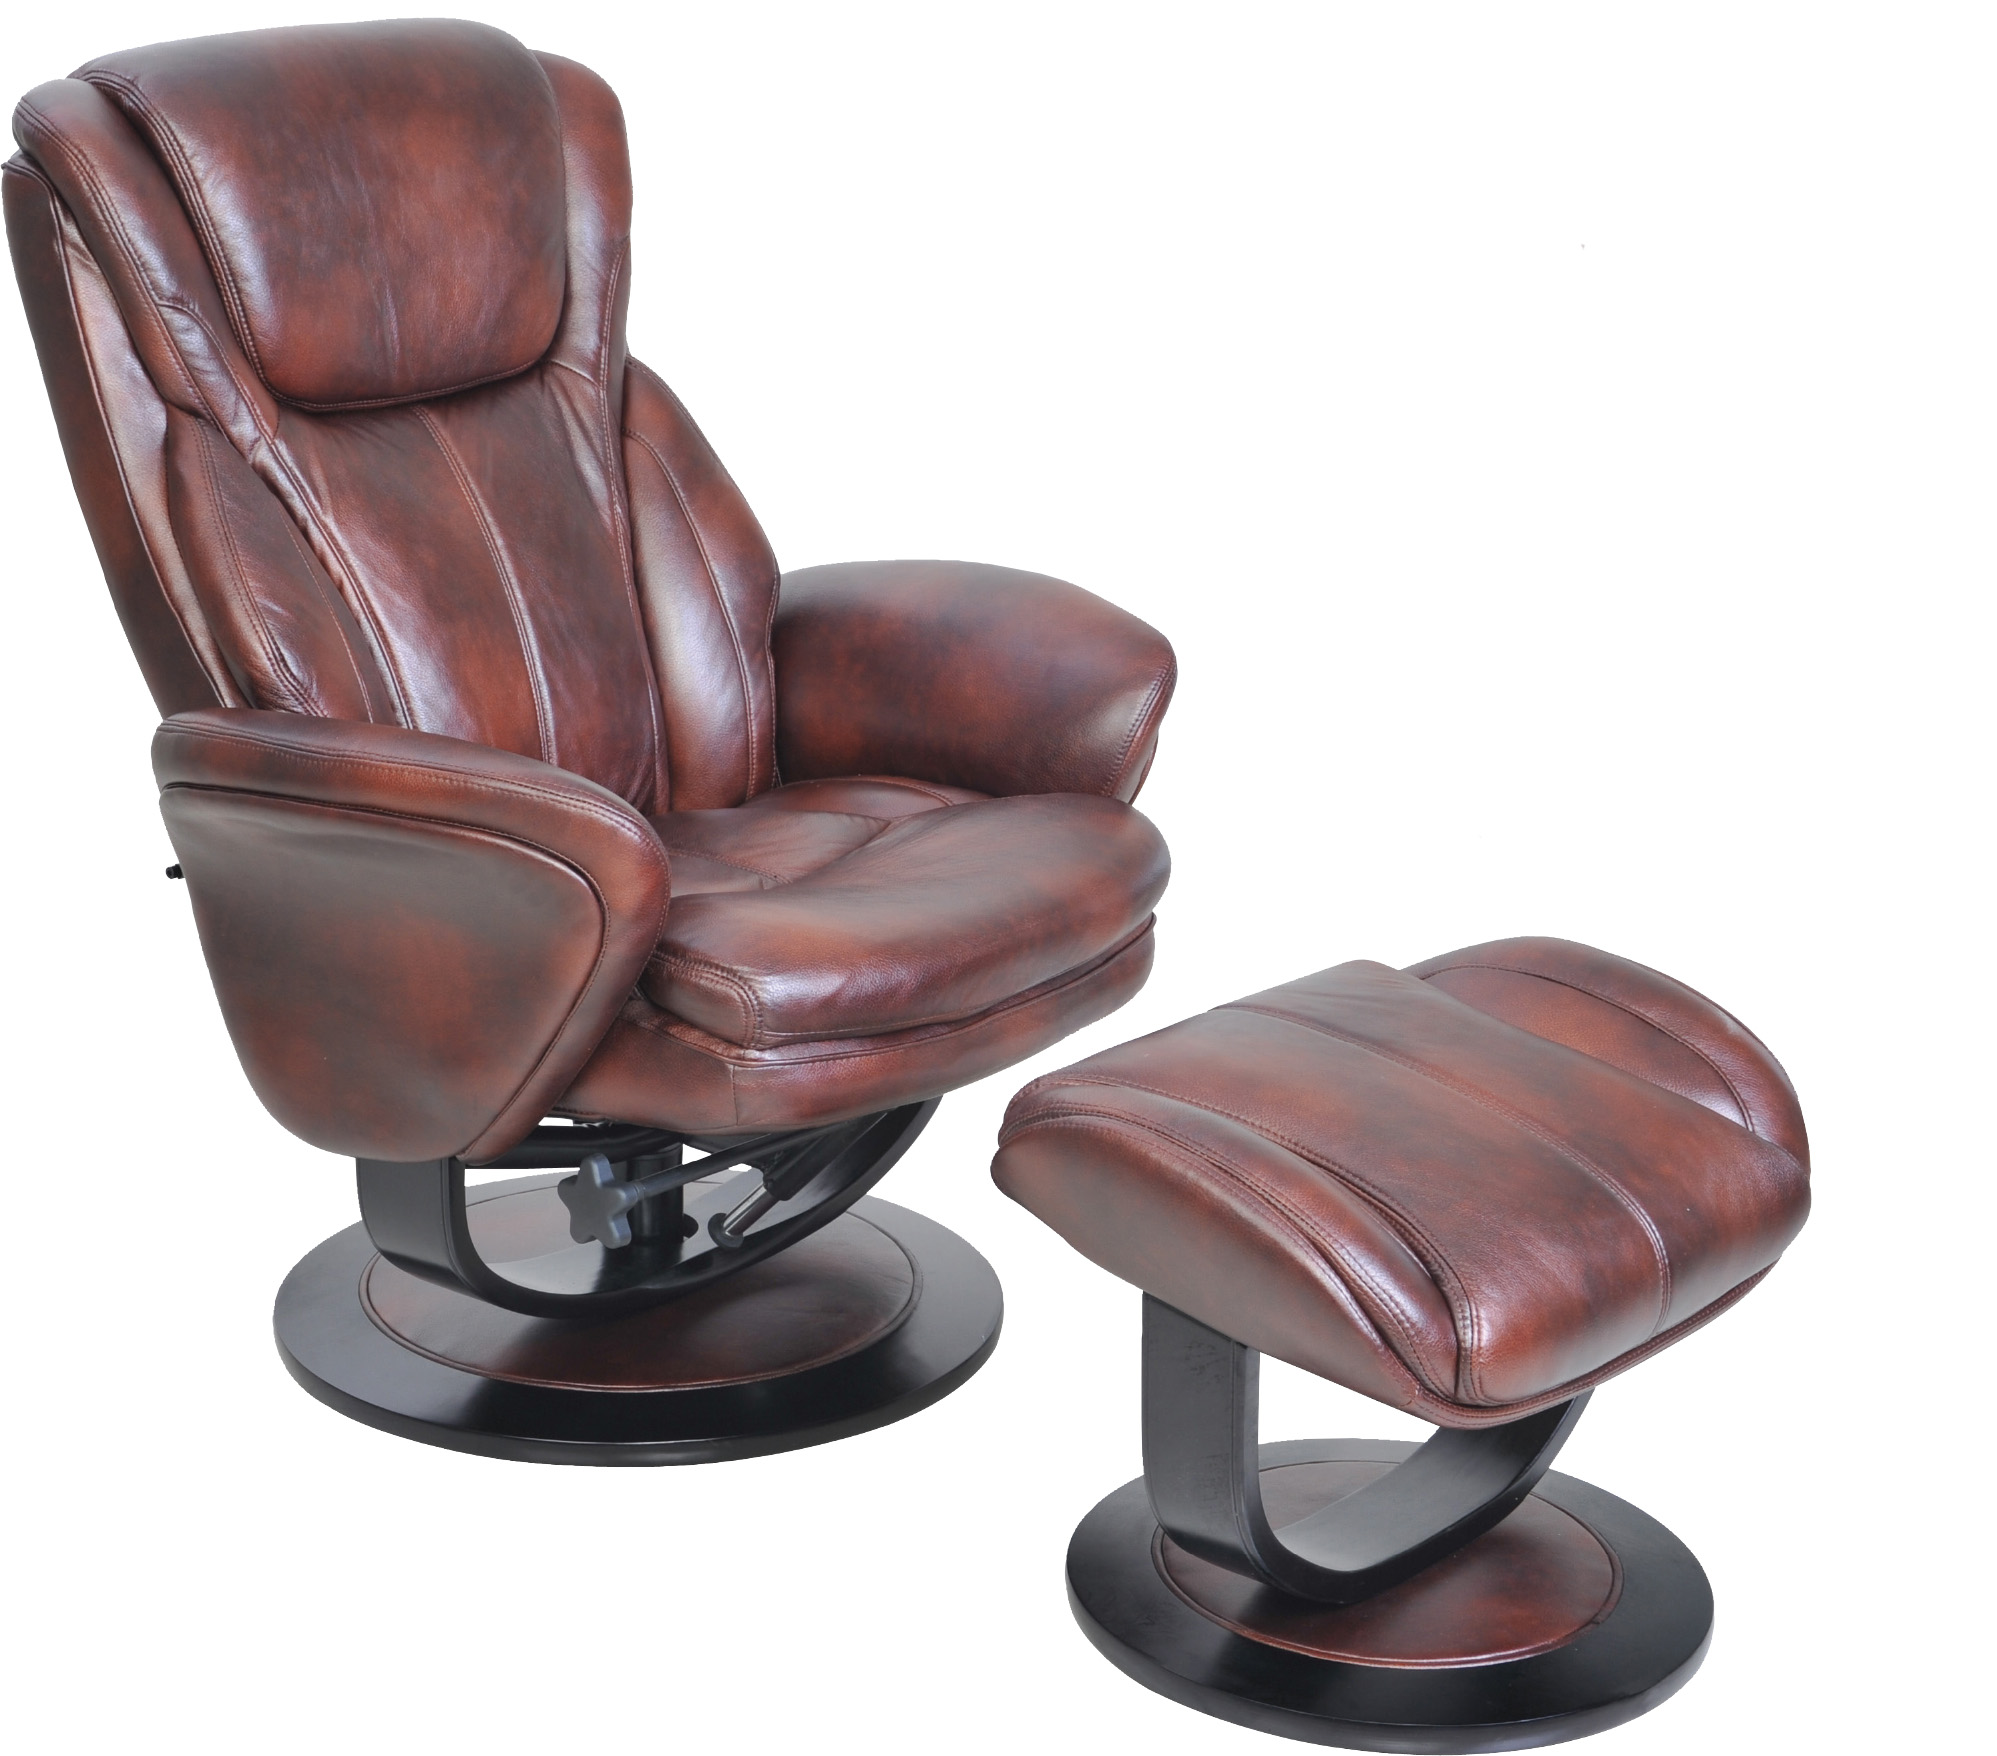 Barcalounger Roma II Leather Recliner Chair and Ottoman  sc 1 st  Vitalityweb.com & Barcalounger Roma II Recliner Chair and Ottoman - Leather Recliner ... islam-shia.org